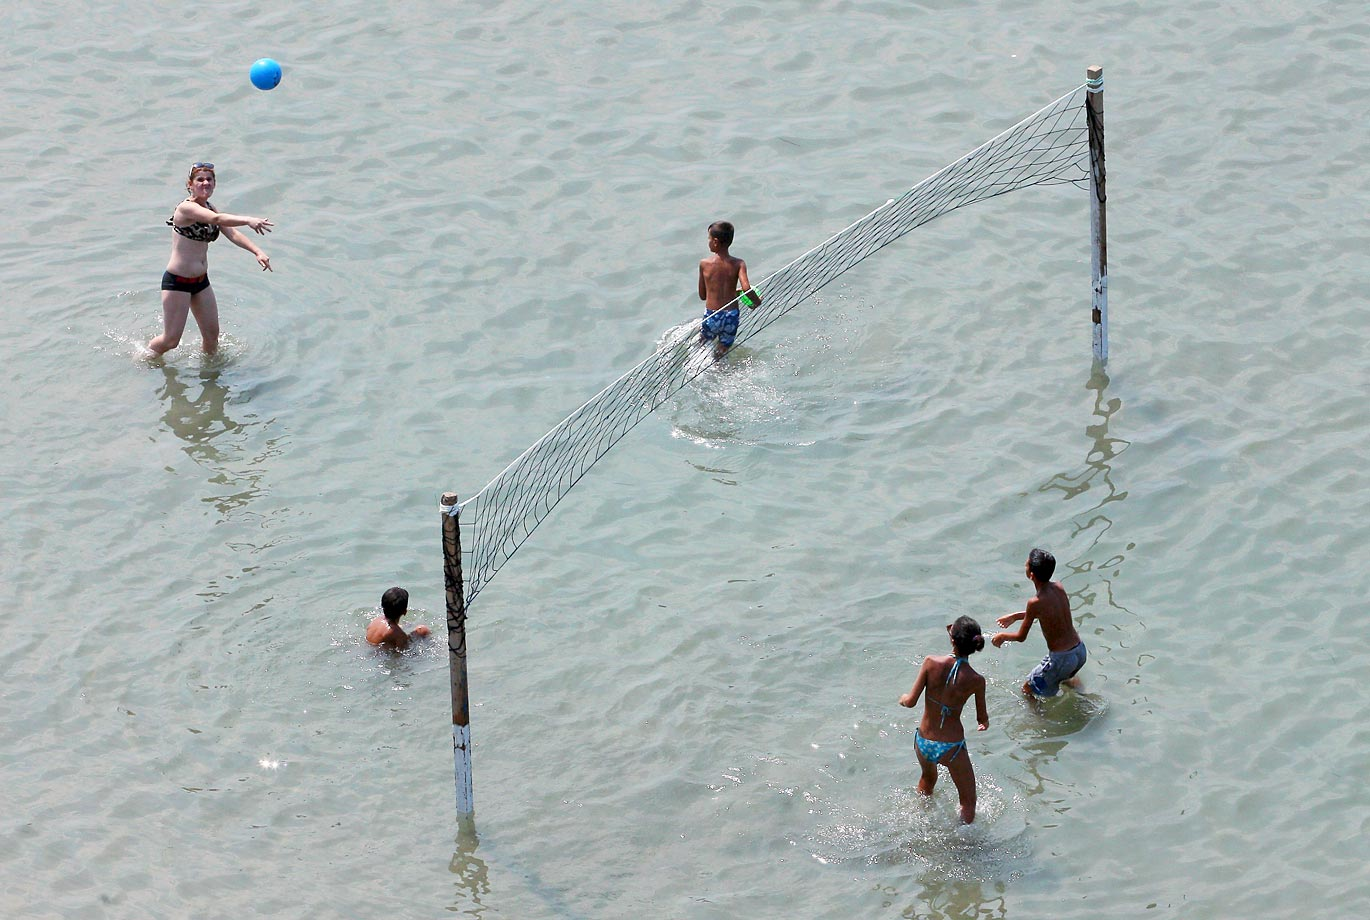 Beach volleyball on the Adriatic Sea in the city of Durres.